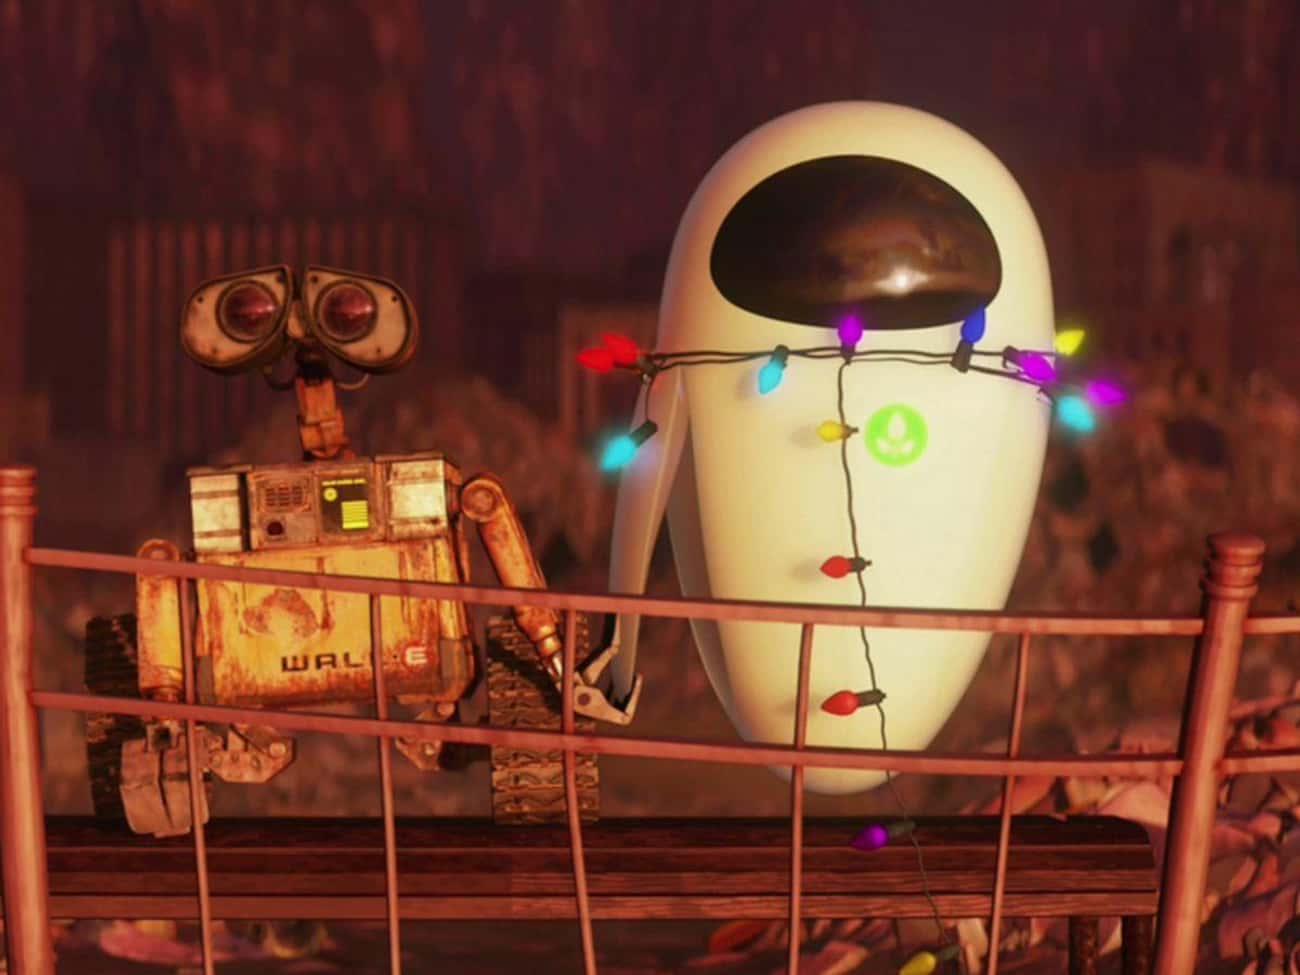 WALL-E is listed (or ranked) 2 on the list The Most Supportive Boyfriends In Science Fiction